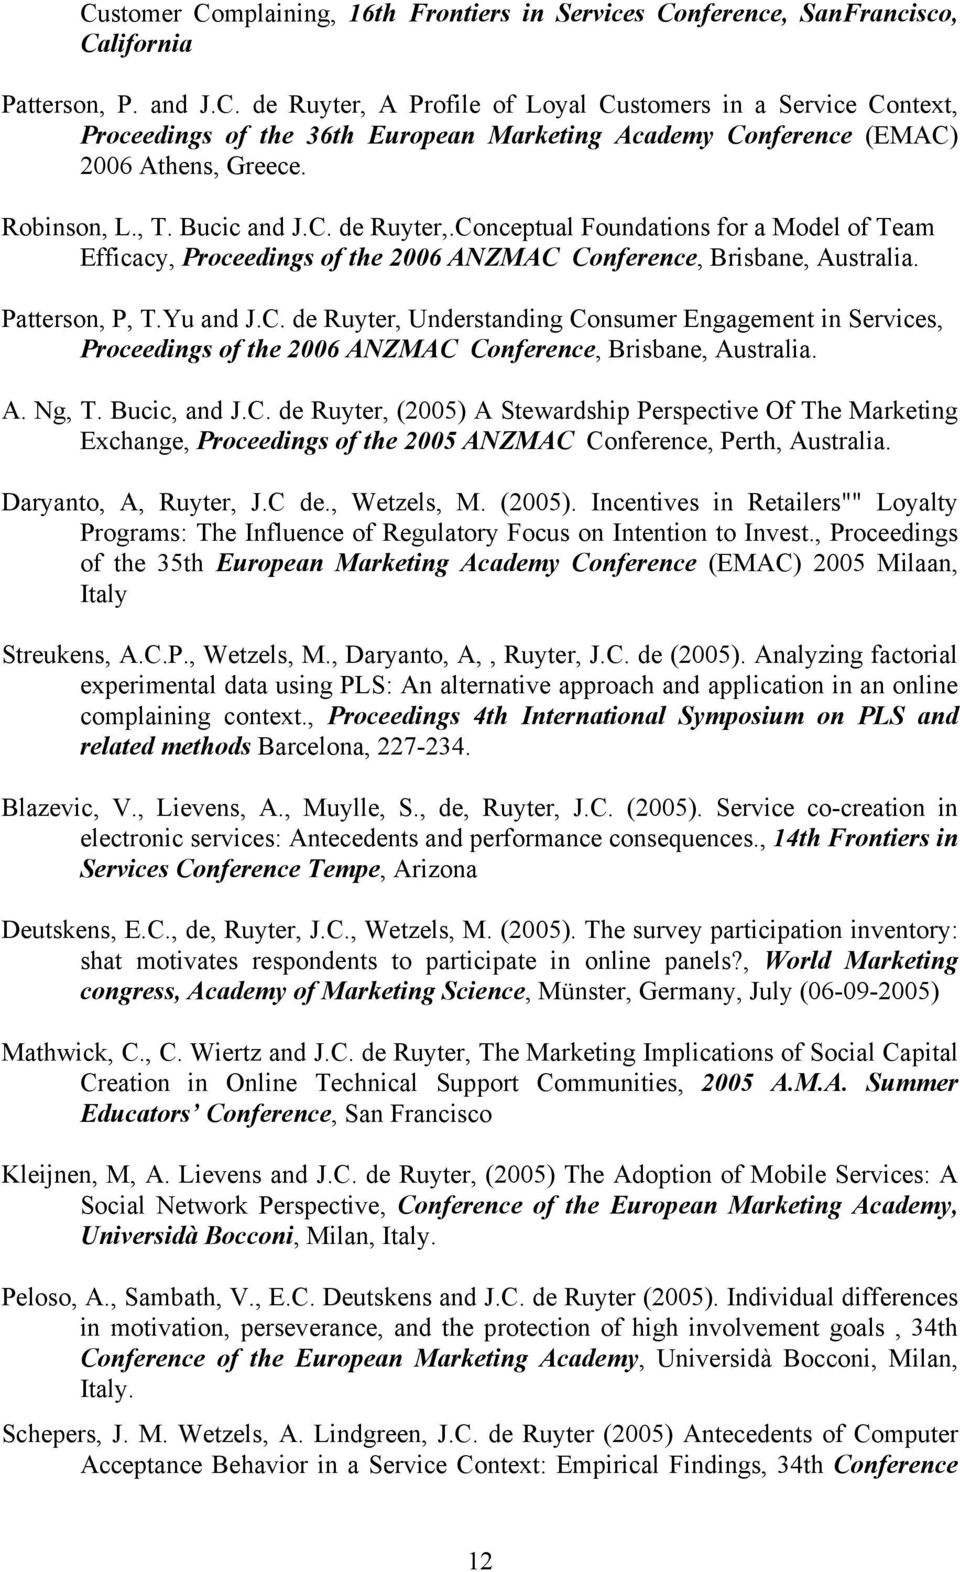 A. Ng, T. Bucic, and J.C. de Ruyter, (2005) A Stewardship Perspective Of The Marketing Exchange, Proceedings of the 2005 ANZMAC Conference, Perth, Australia. Daryanto, A, Ruyter, J.C de., Wetzels, M.